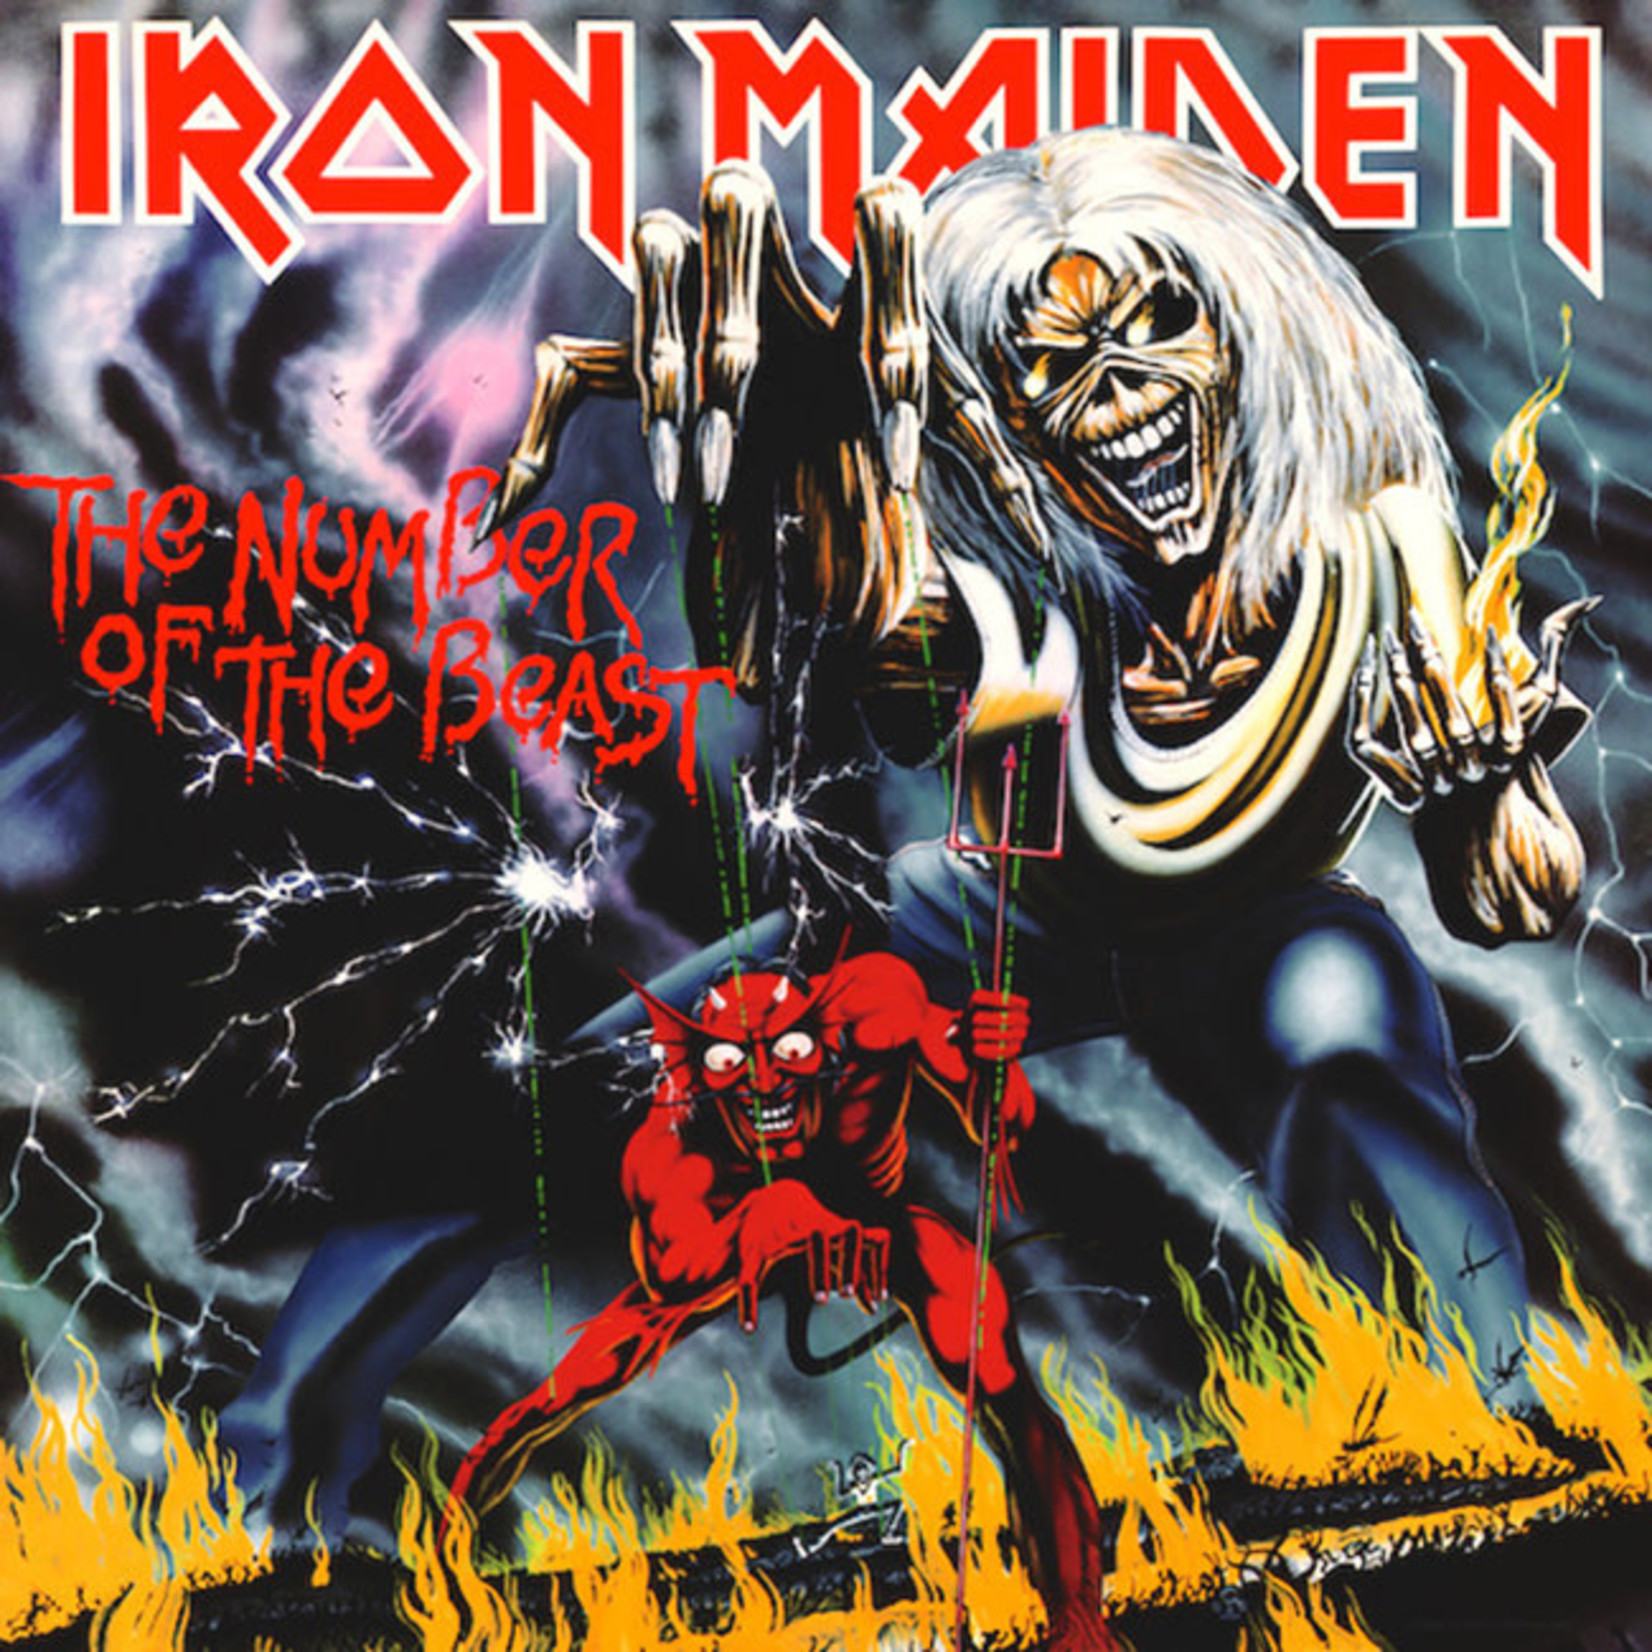 [New] Iron Maiden: The Number Of The Beast